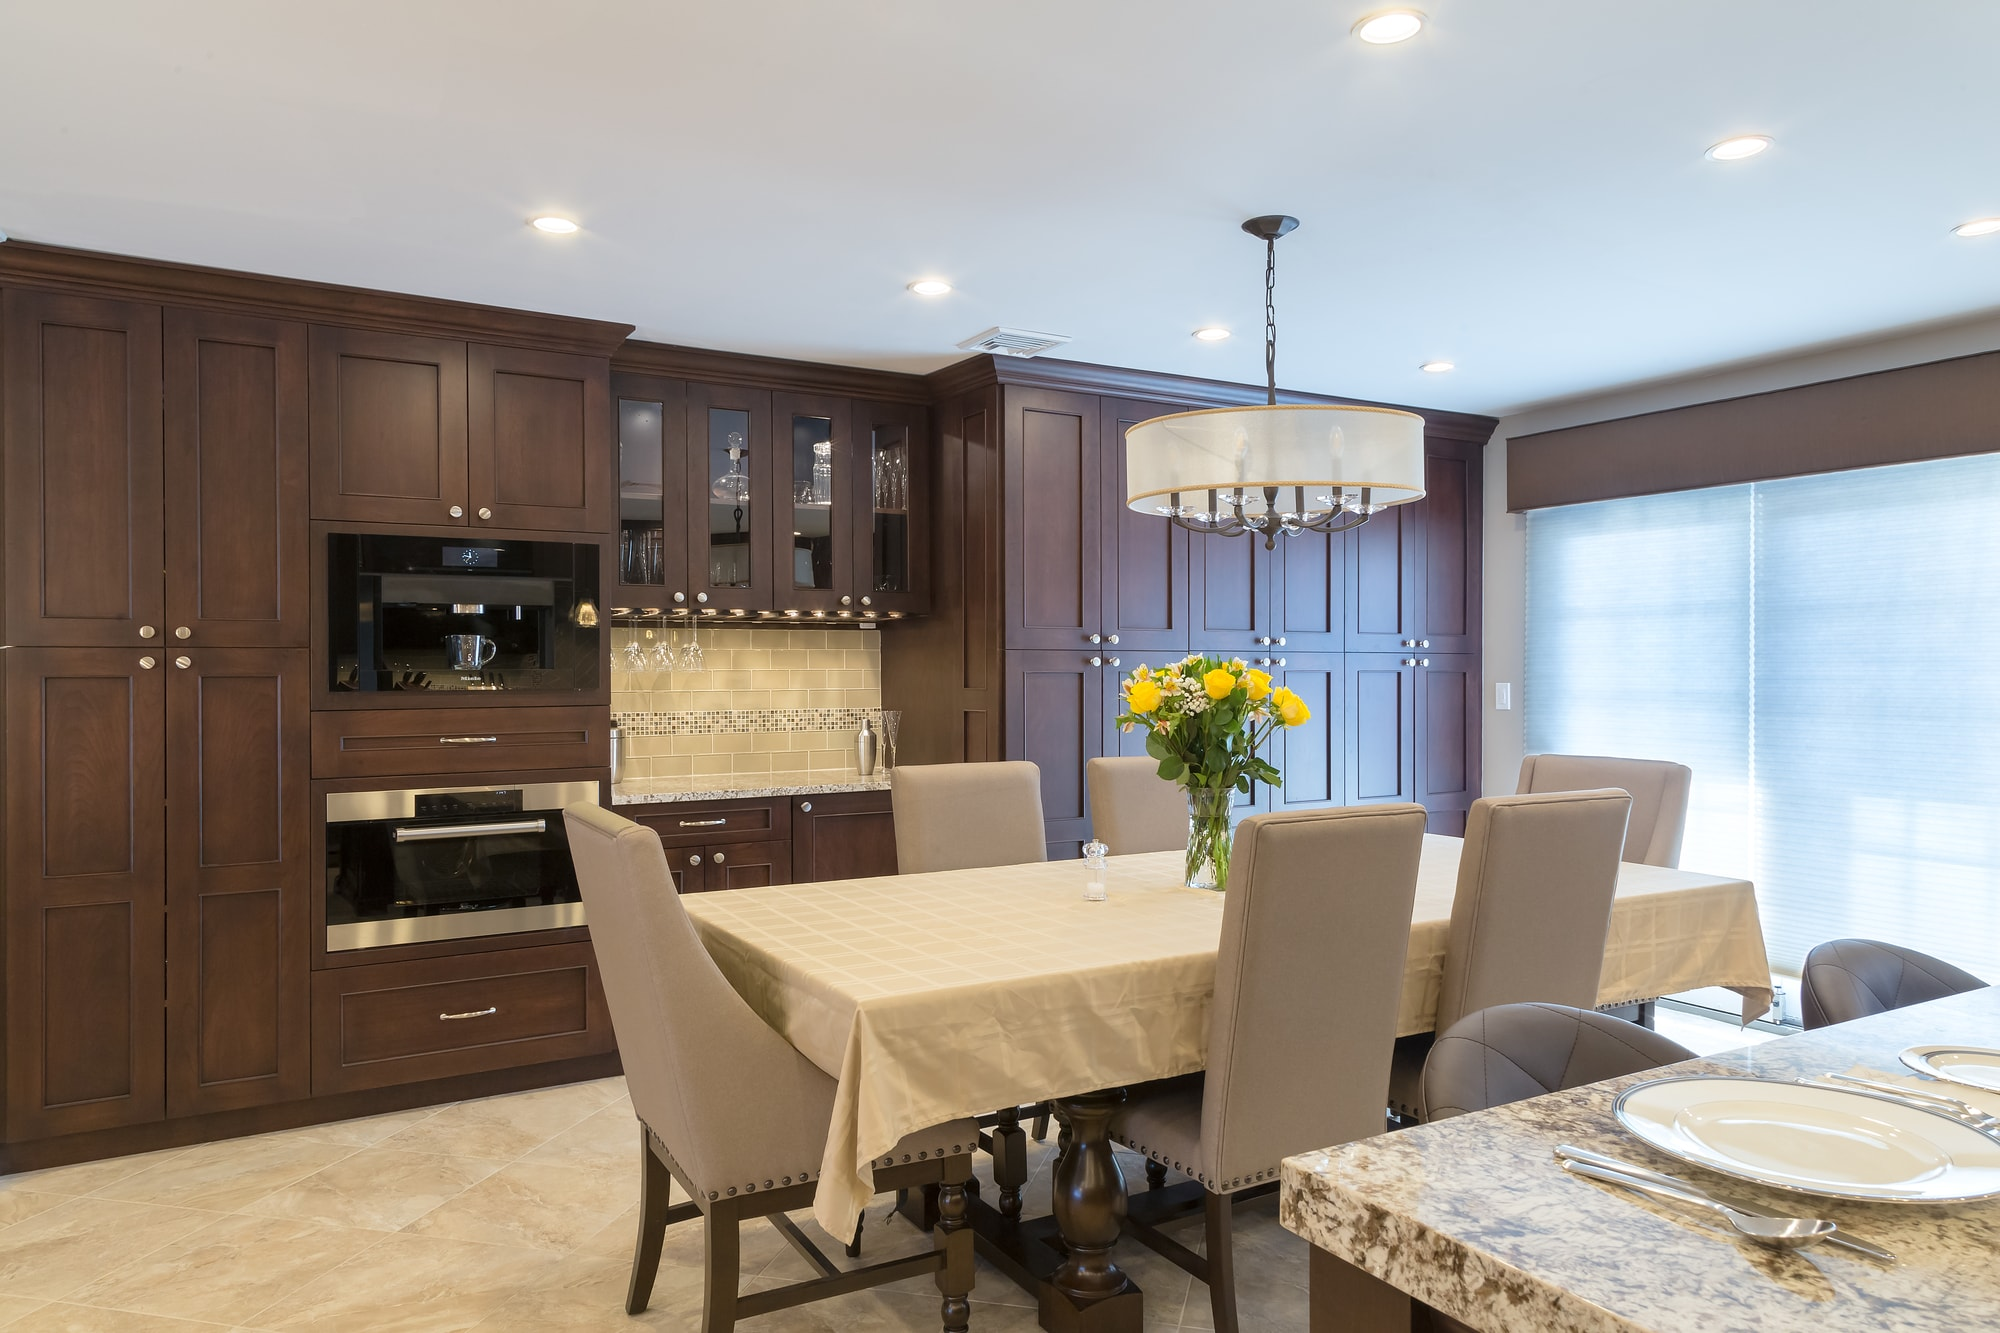 Traditional style kitchen with long dining table